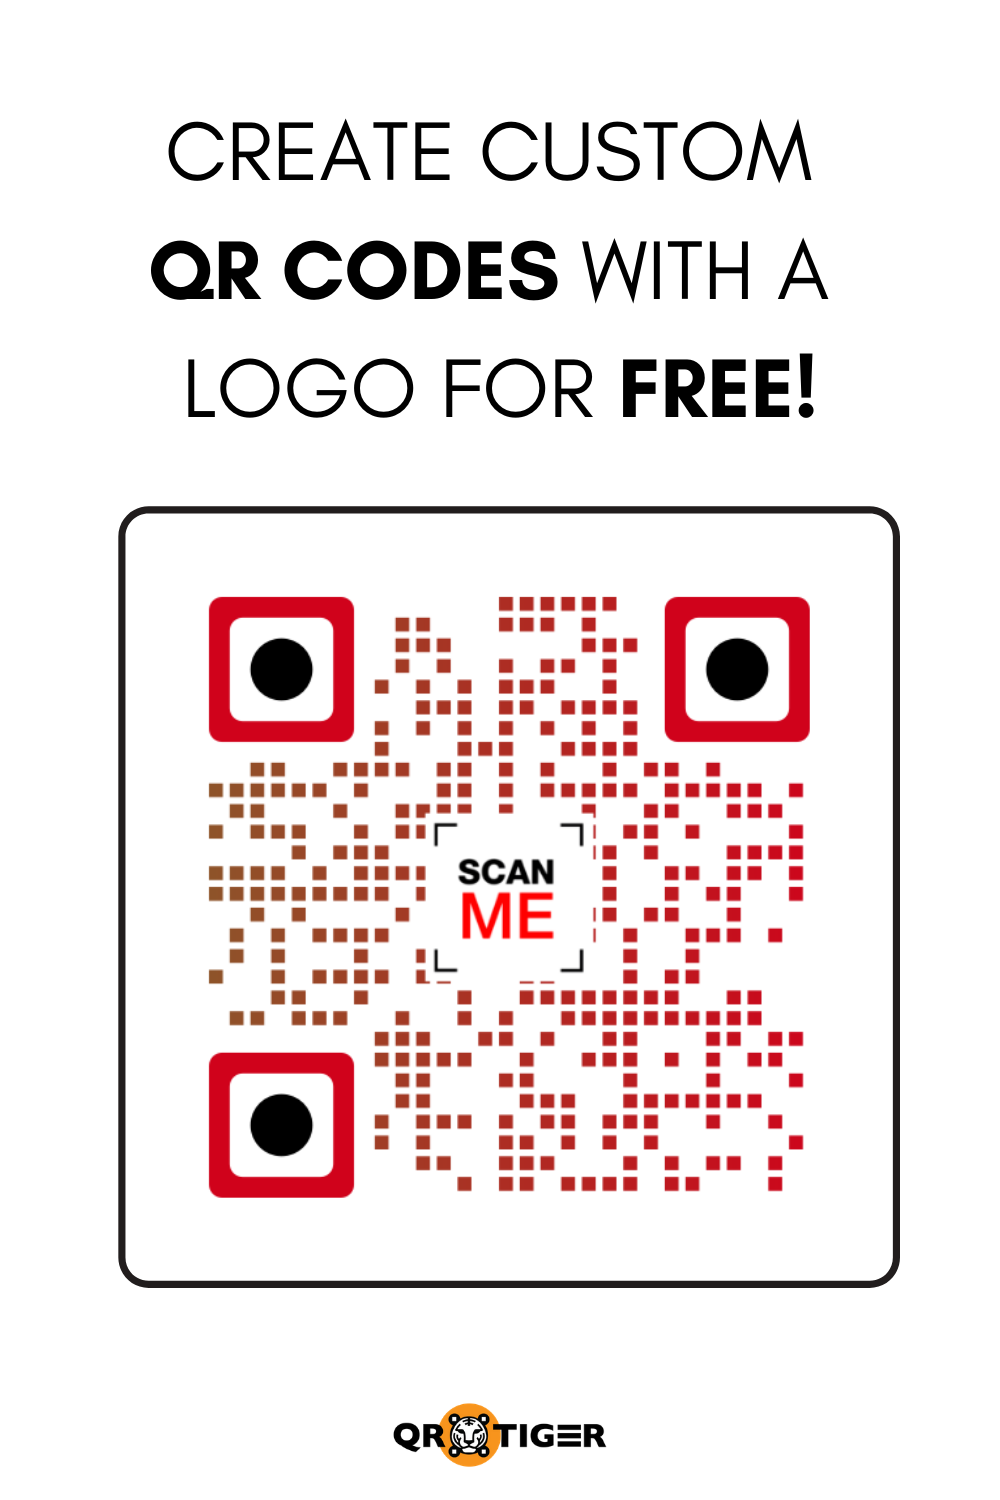 Best Qr Code Generator How To Customize Qr Code Create Qr Codes For Free Qr Codes With Logo Coding Qr Code Free Qr Code